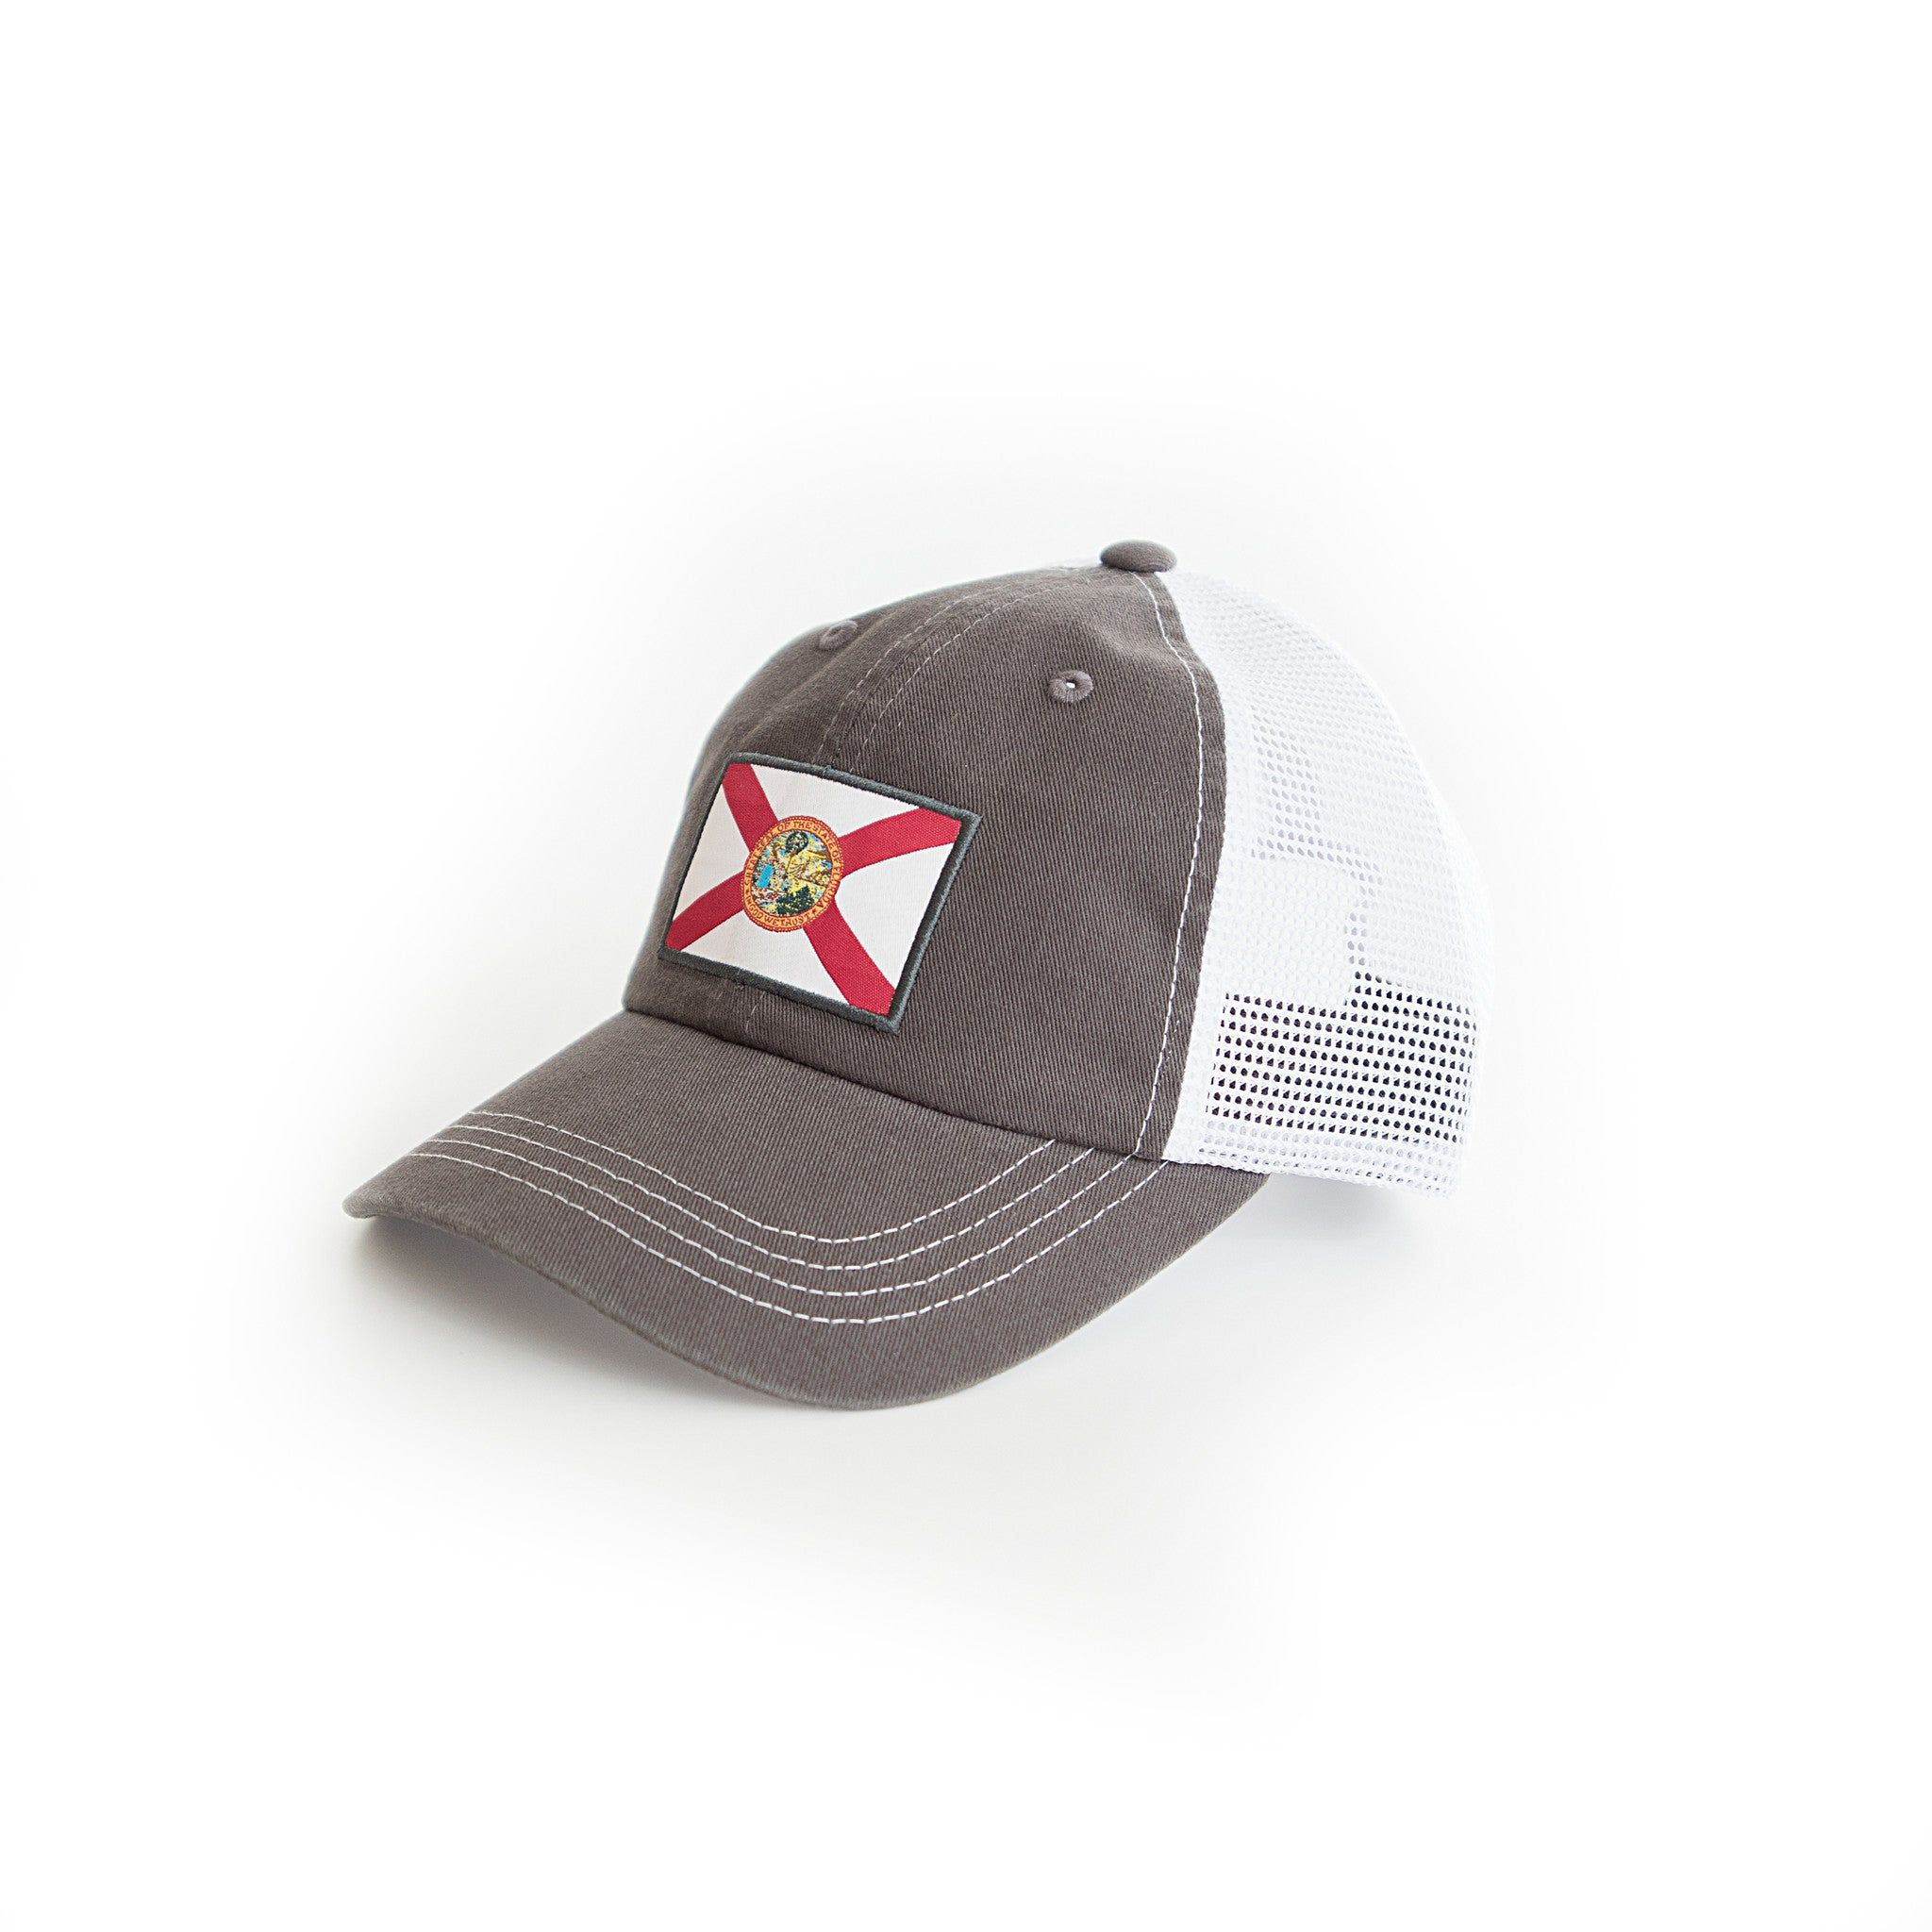 0b8589ee5e4 ... new style charcoal grey florida state flag trucker hat side view 1330c  f8e5b